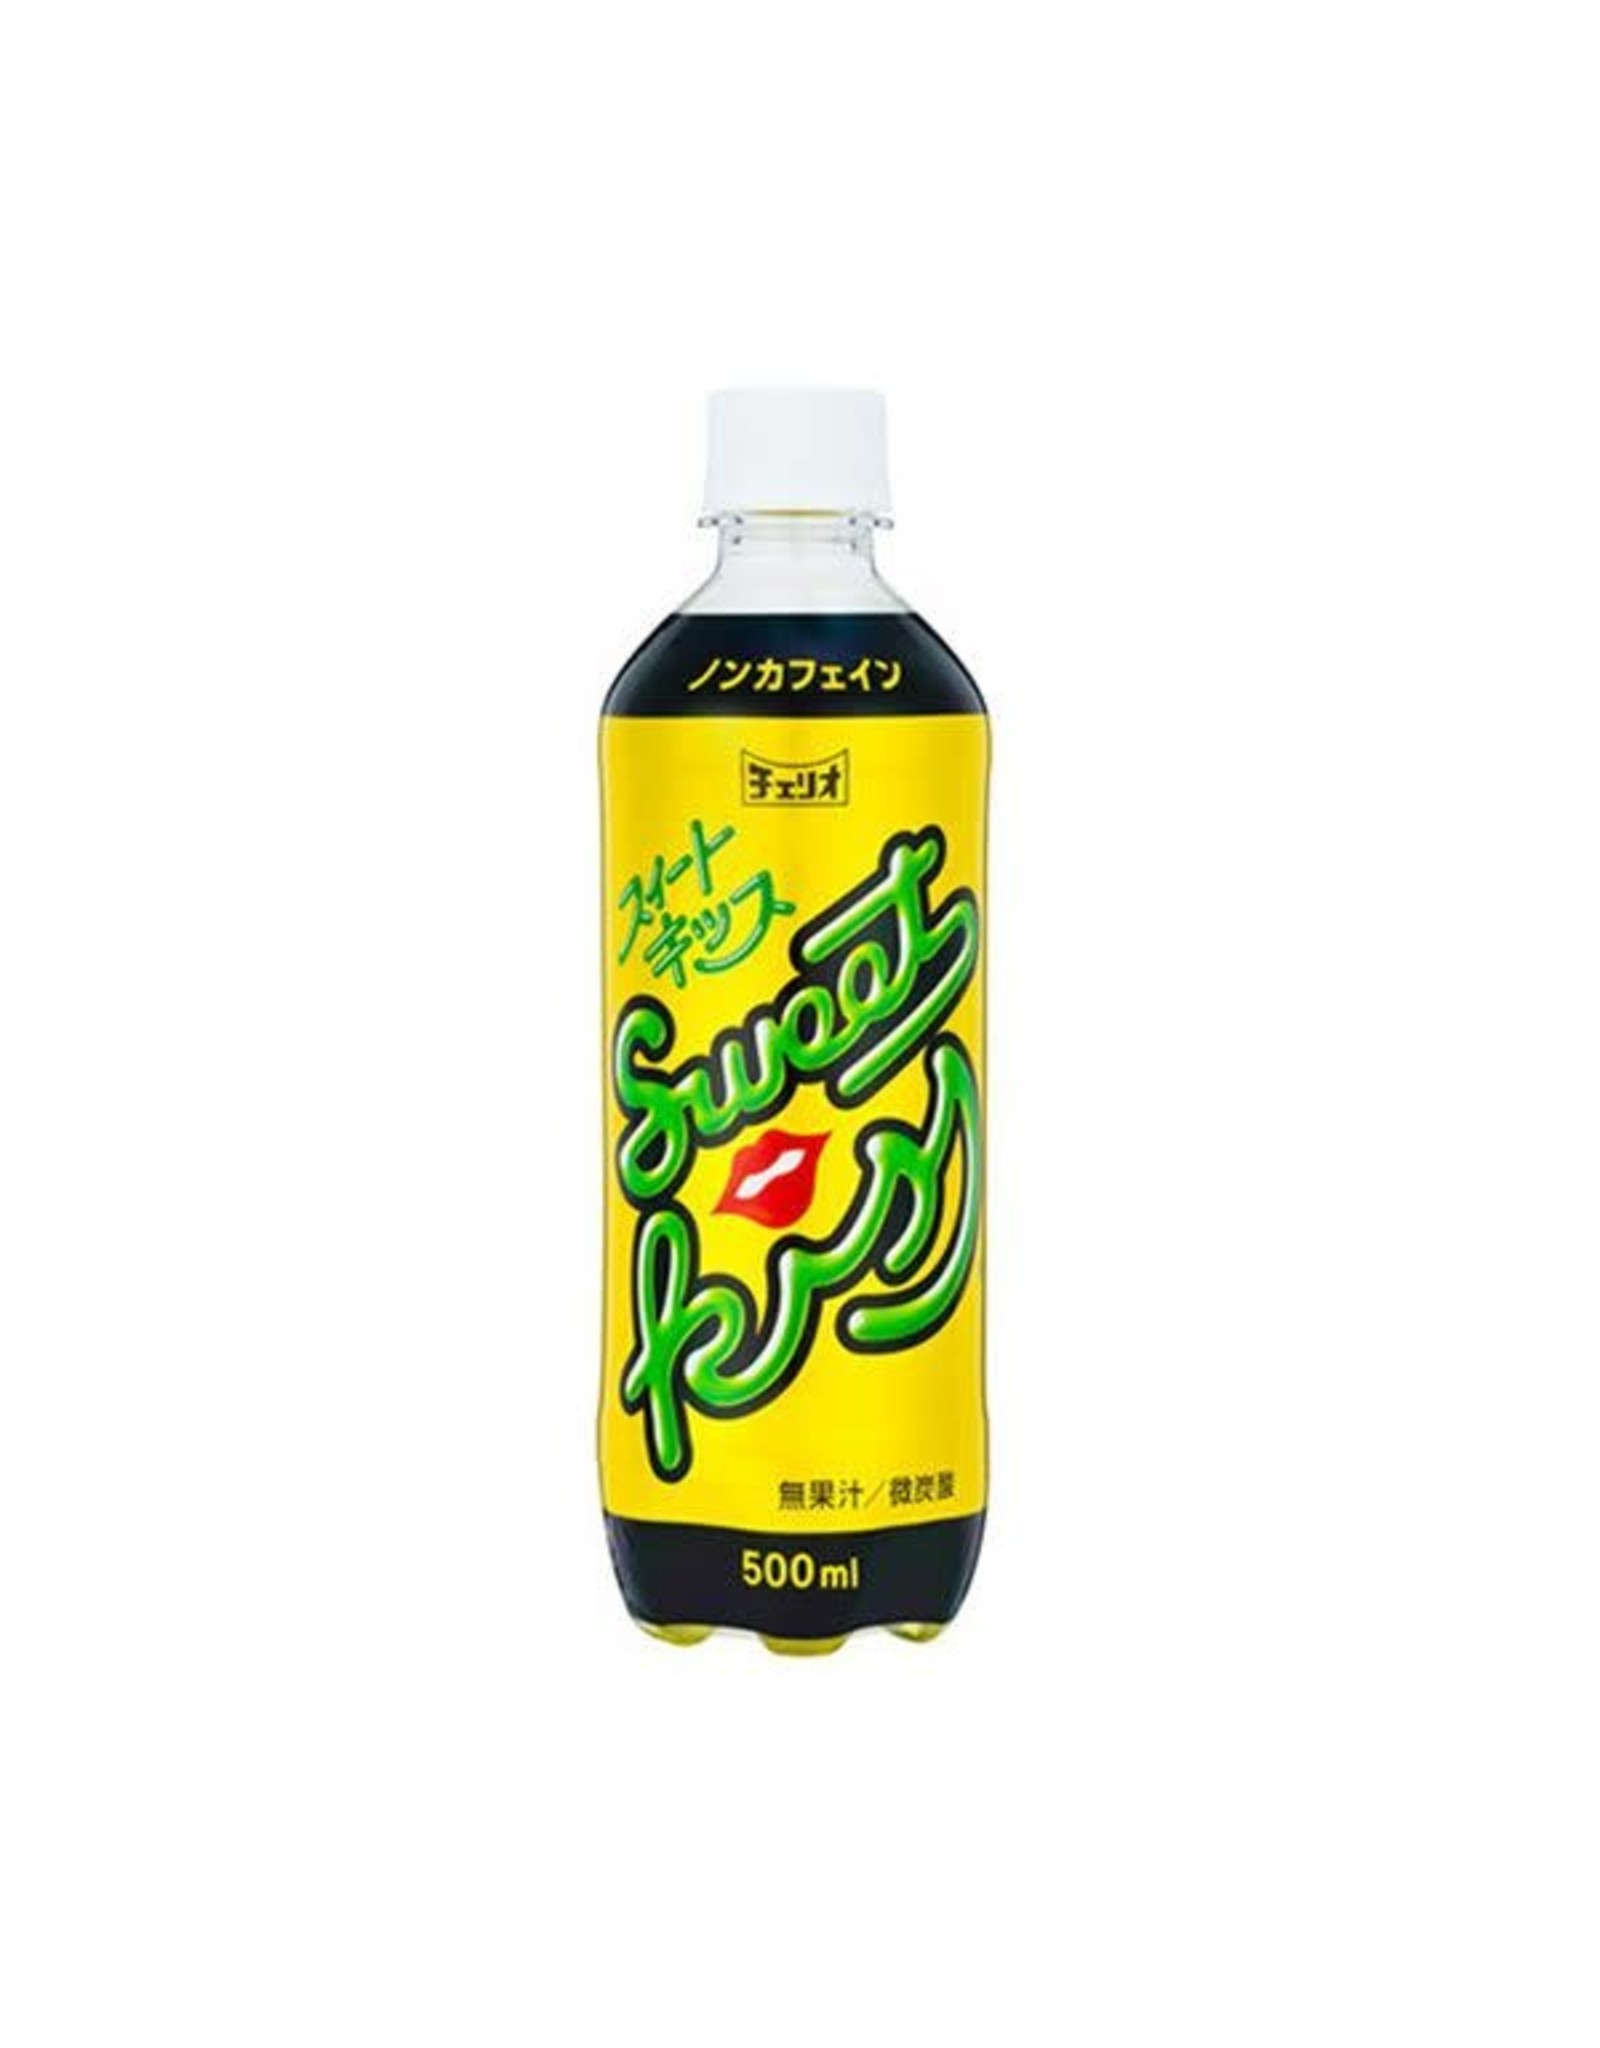 Sweet Kiss Citrus Flavored Carbonated Drink - 500ml